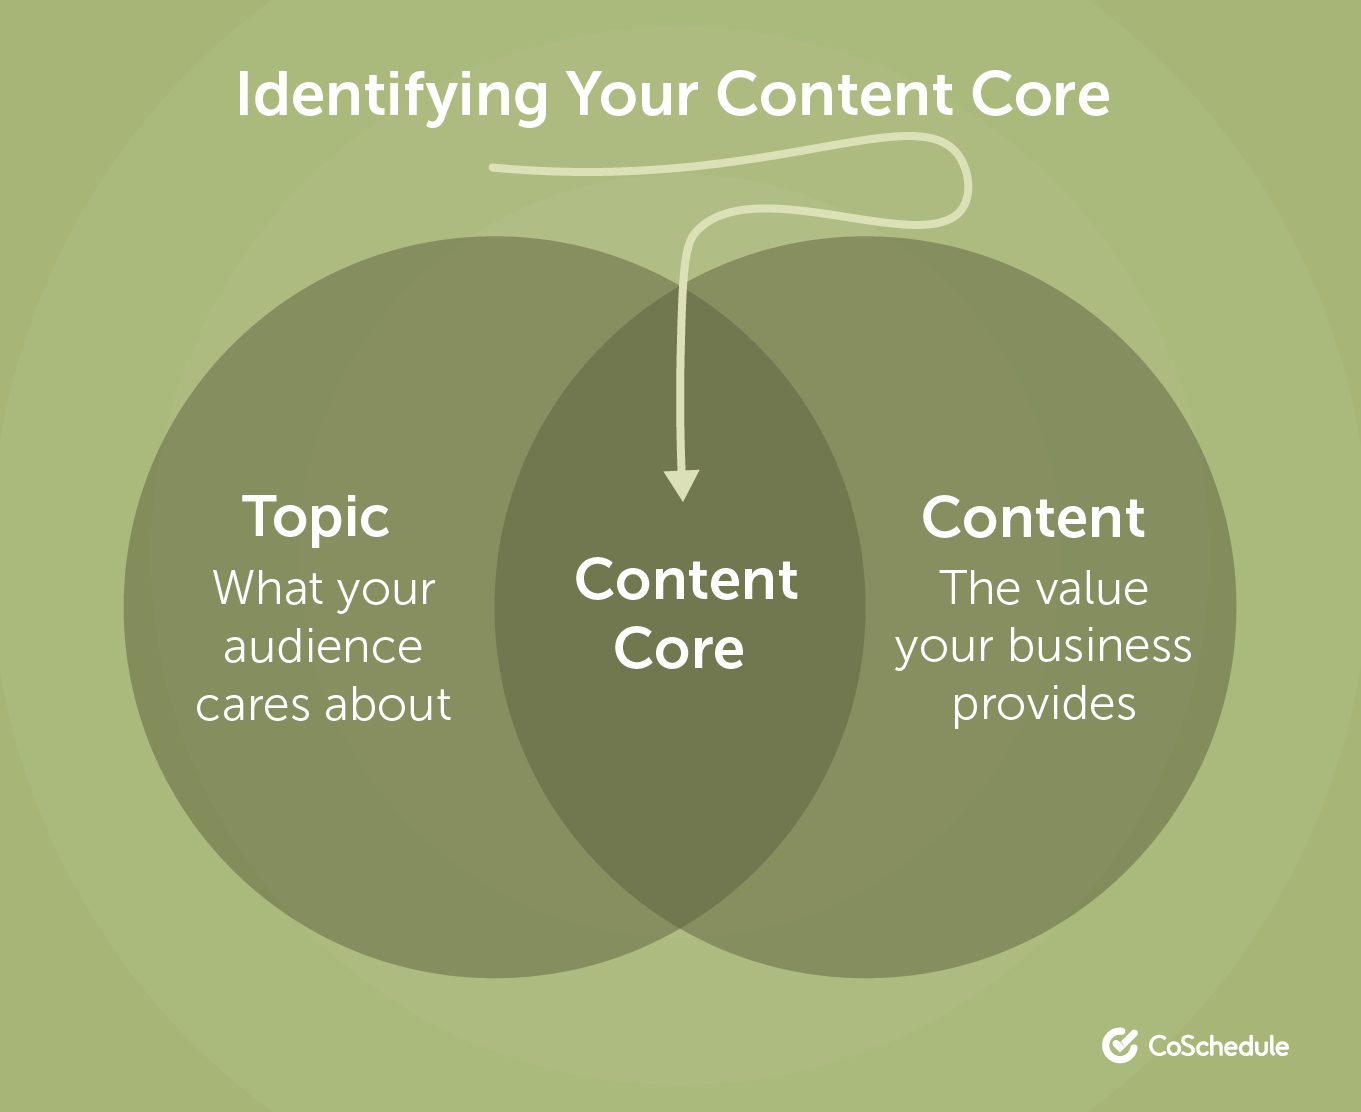 Identifying your content core